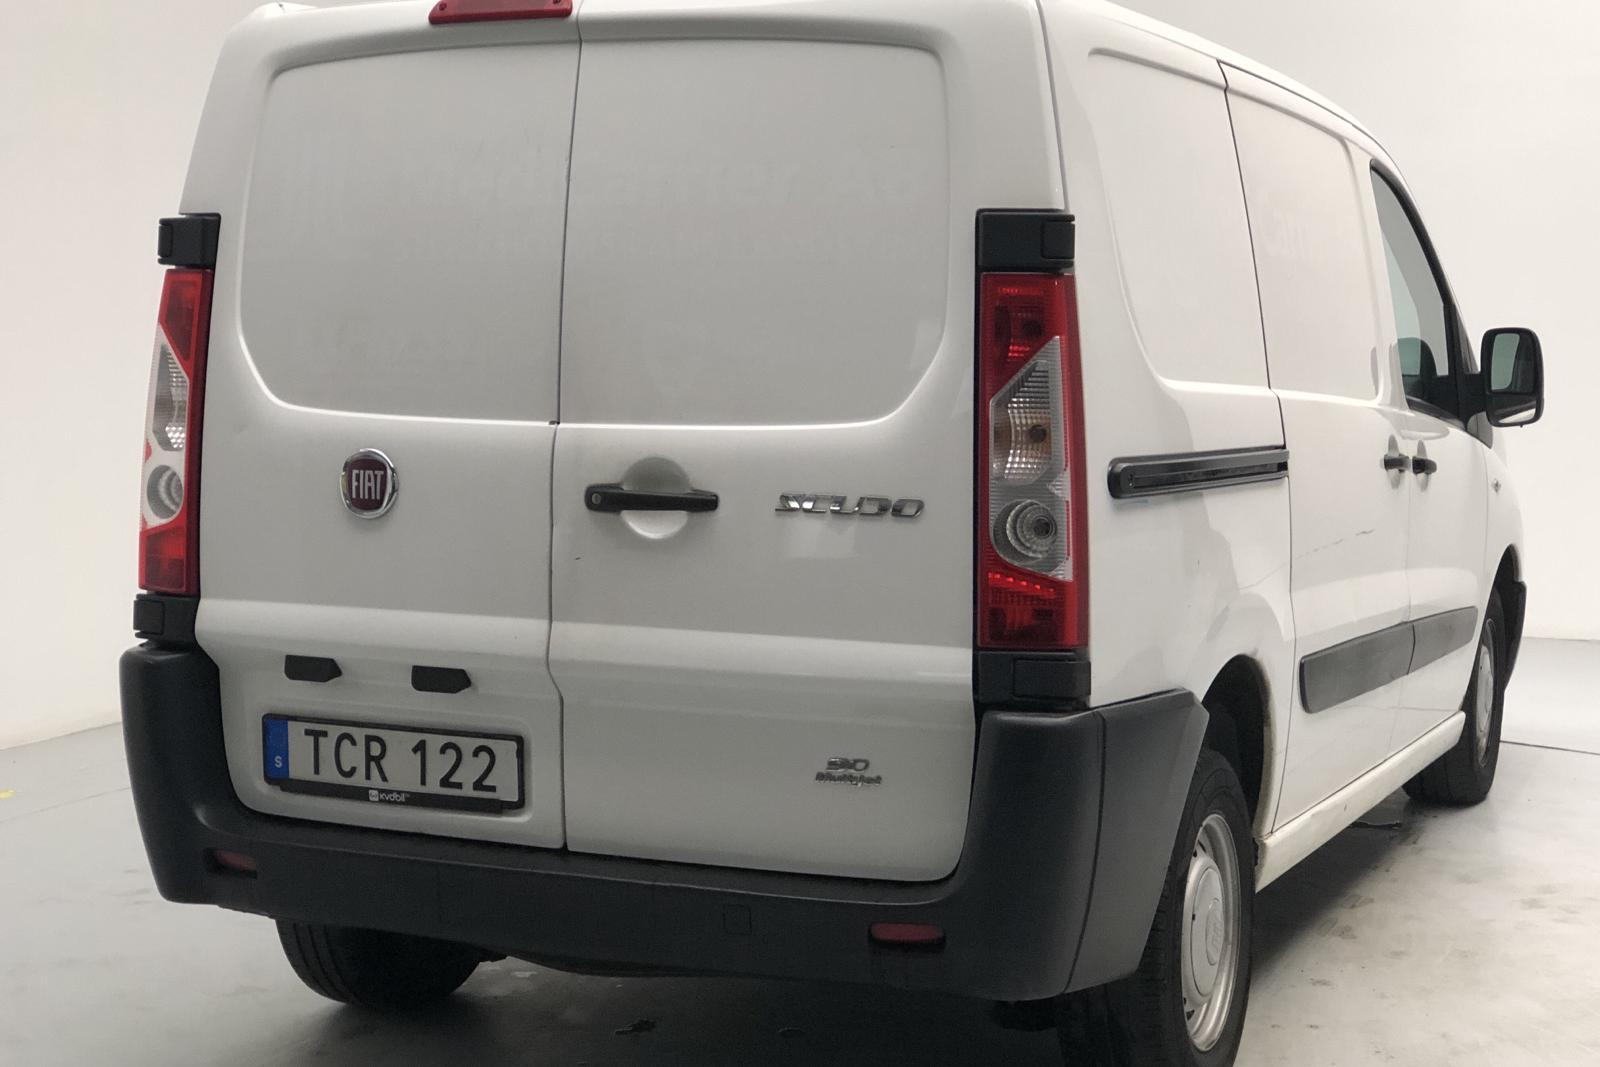 Fiat Scudo 1.6 MJT (90hk) - 190 010 km - Manual - white - 2014